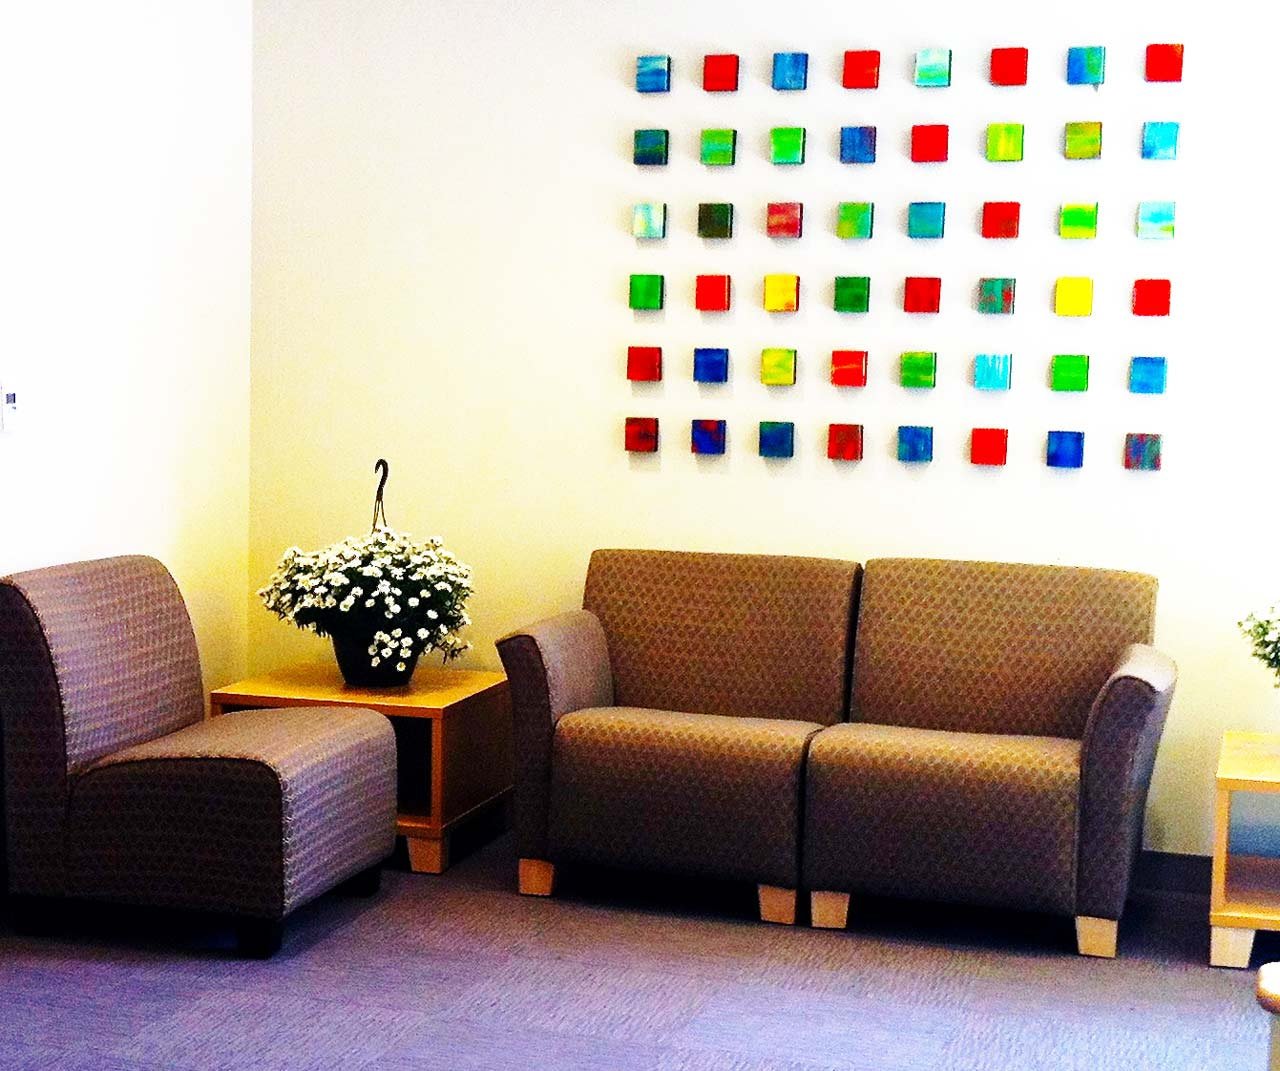 Waiting room art | Healthcare Art | Custom colorful wall sculpture | Rosemary Pierce